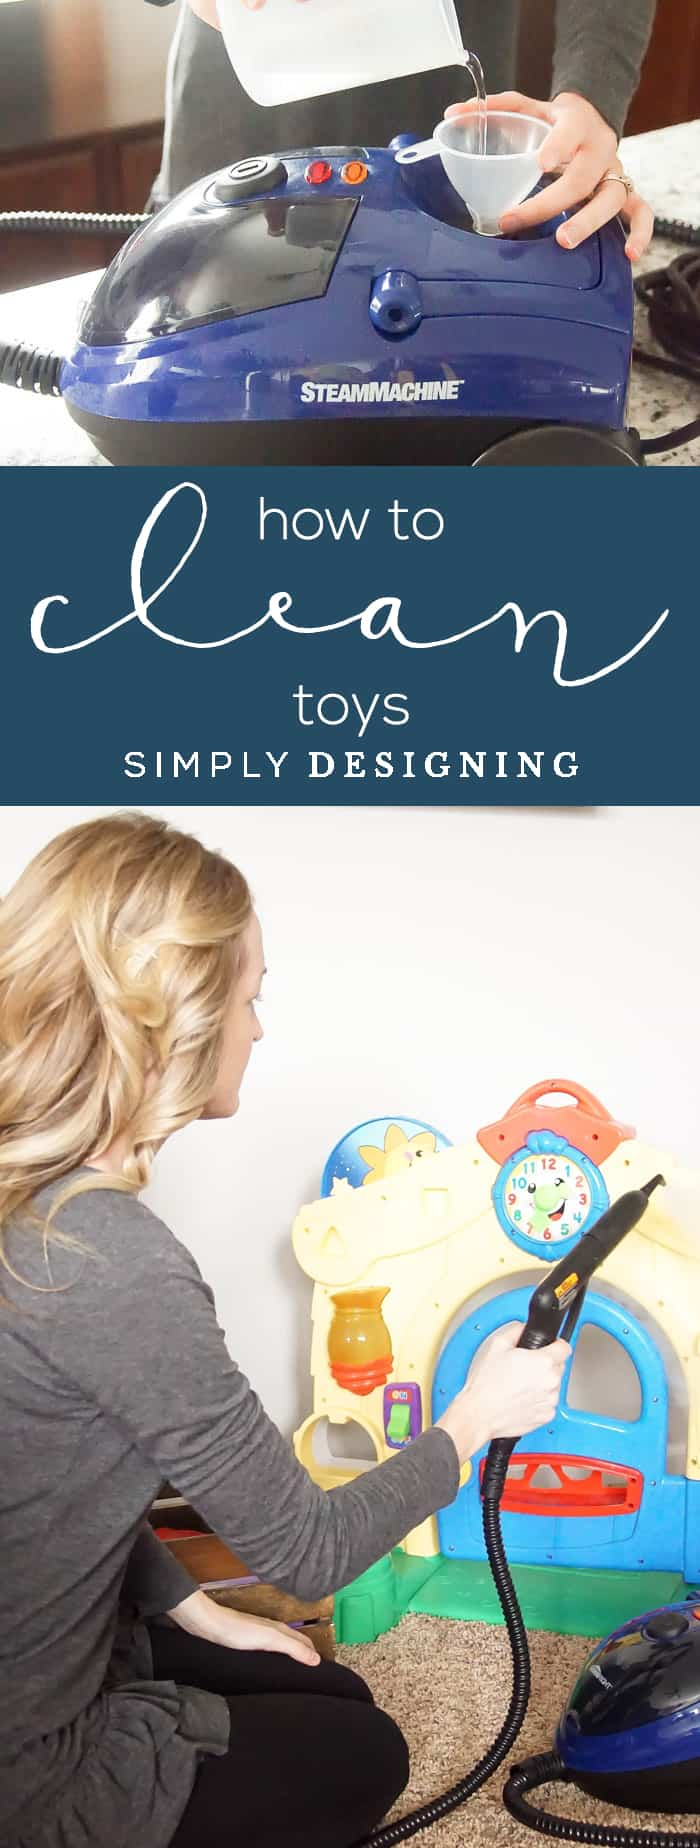 How To Clean Baby Toys : How to clean toys